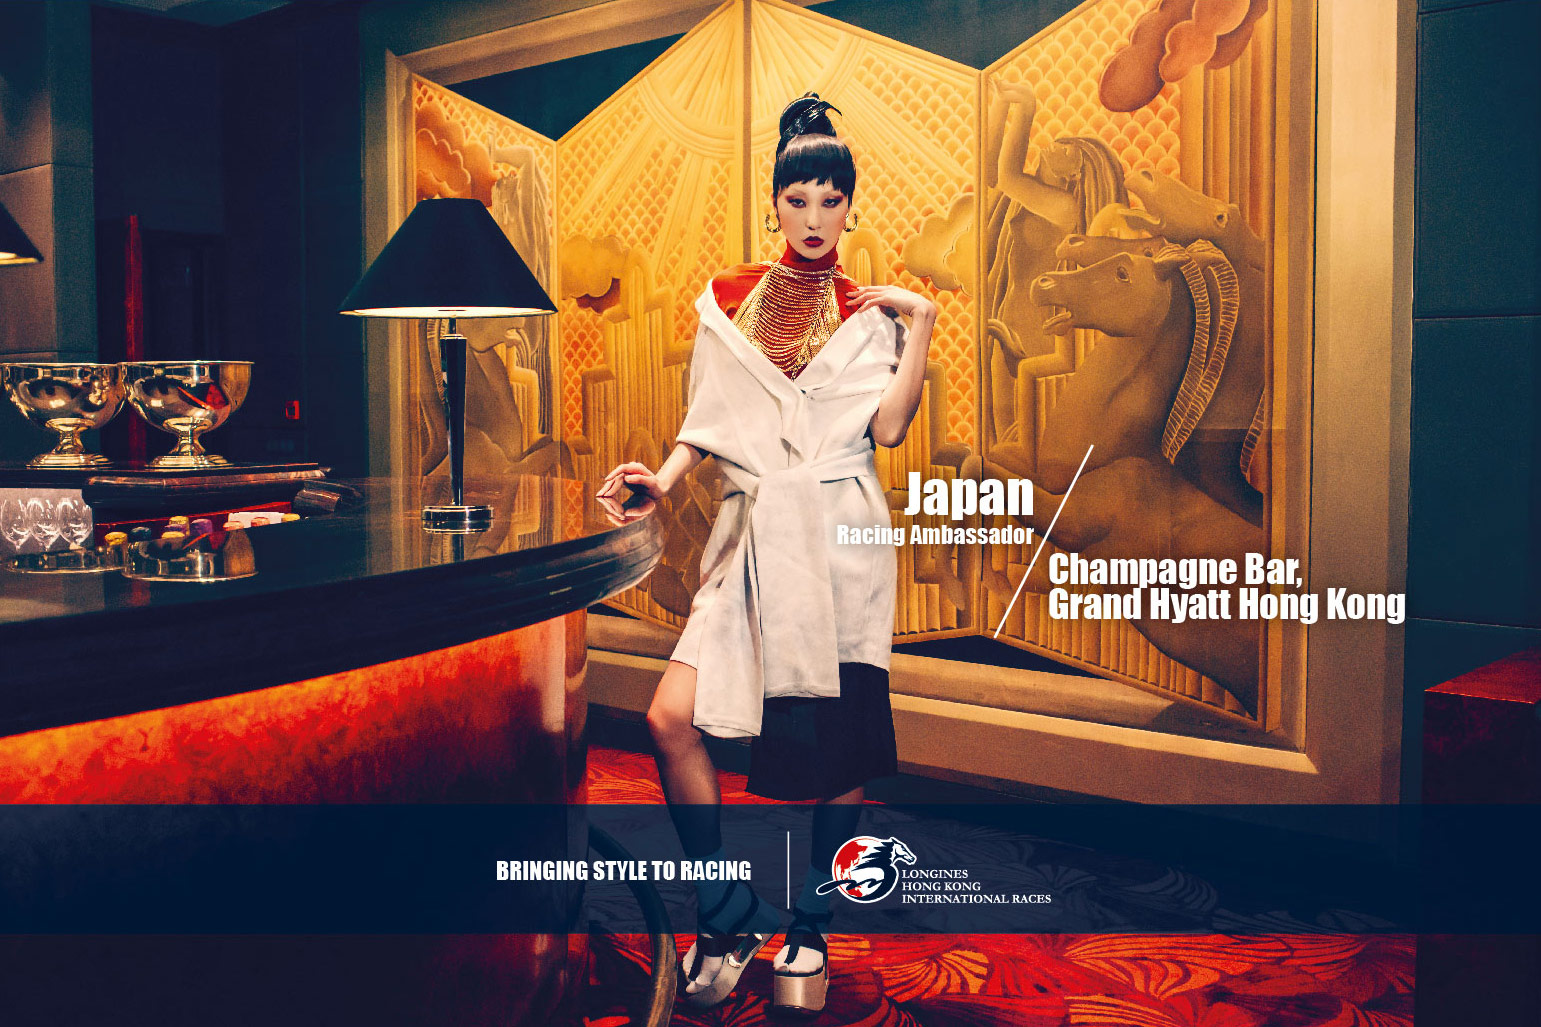 Japan-Racing-Ambassador---Champagne-Bar,-Grand-Hyatt-Hong-Kong